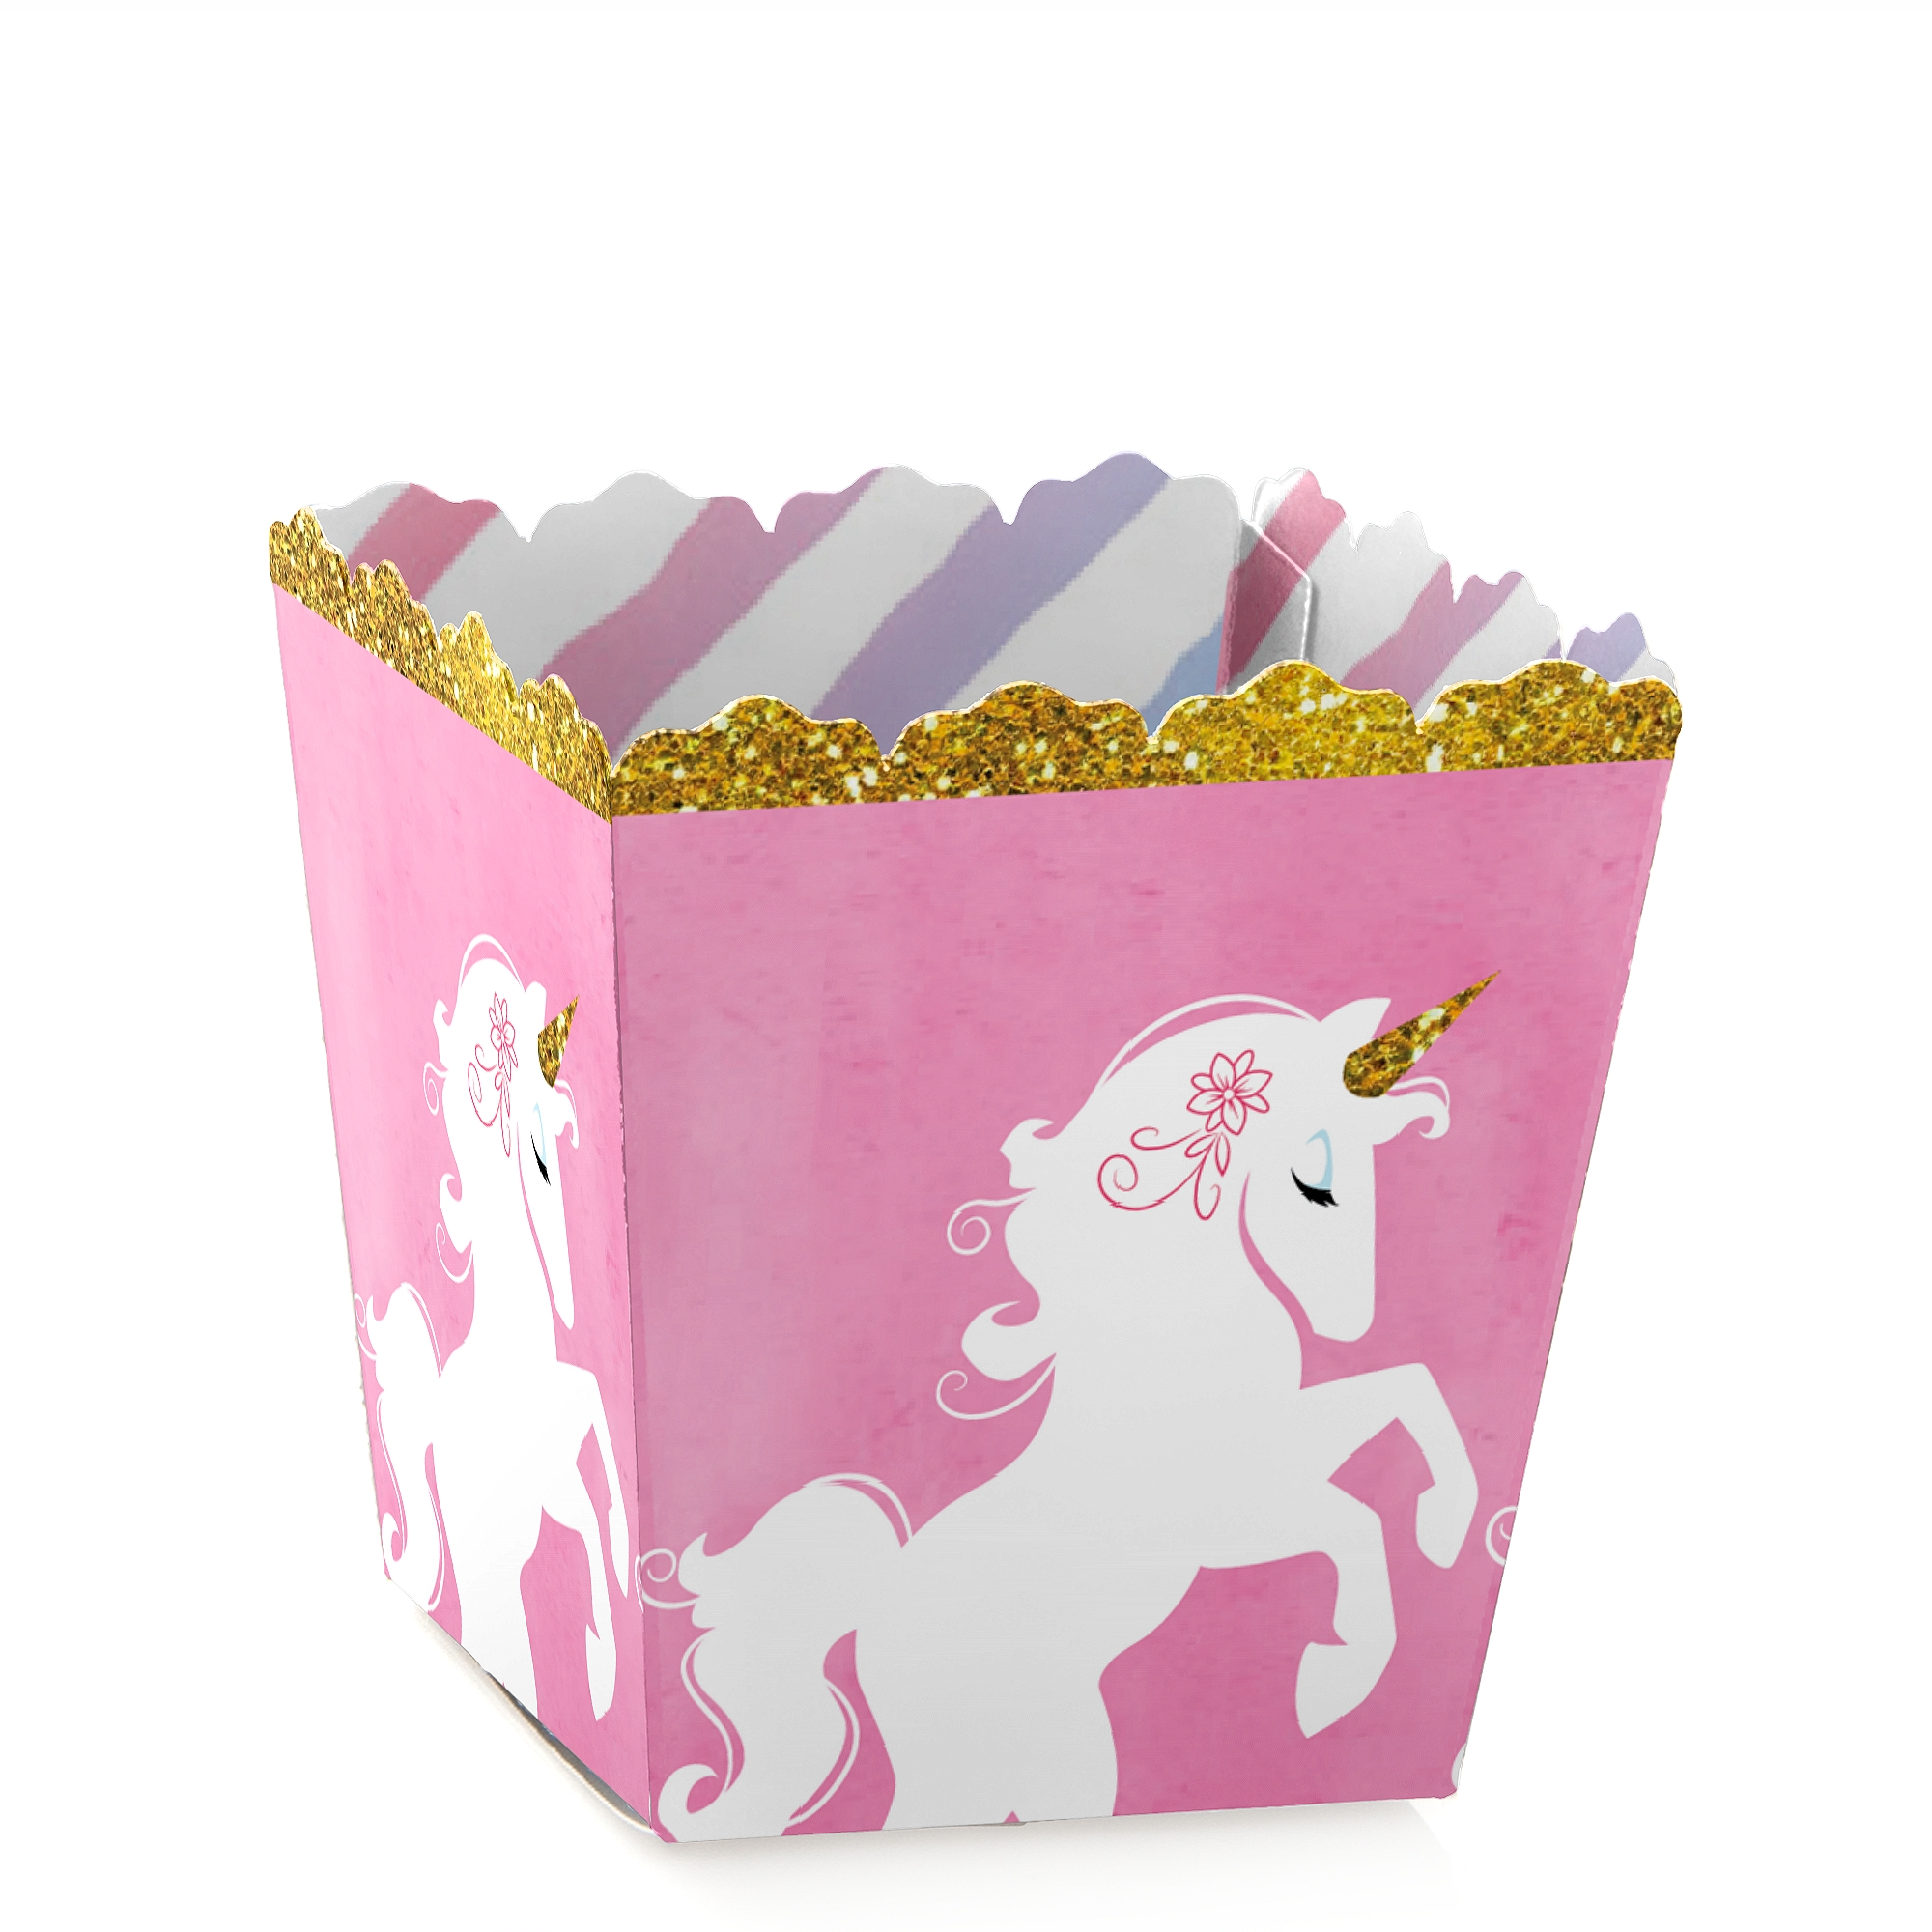 Rainbow Unicorn - Party Mini Favor Boxes - Magical Unicorn Baby Shower or Birthday Party Treat Candy Boxes - Set of 12